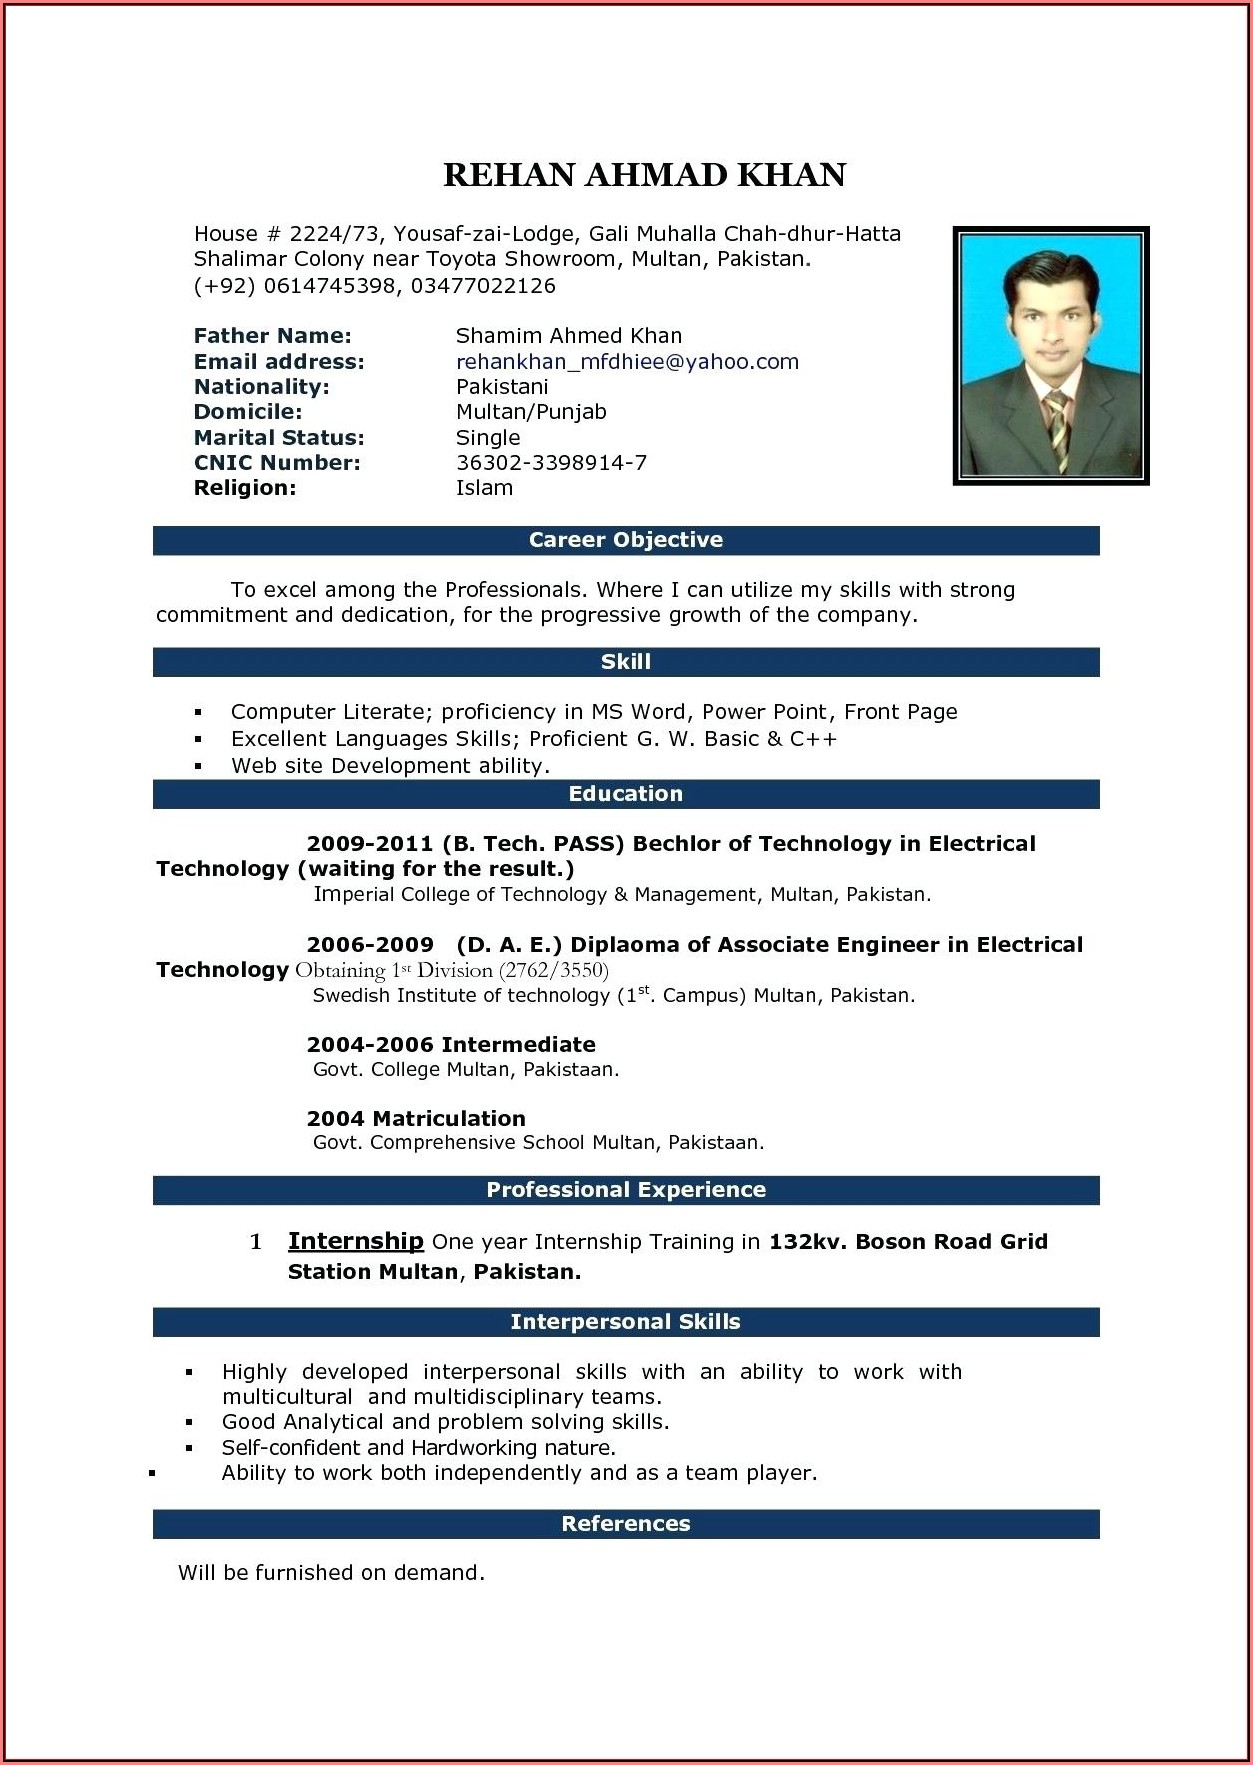 Free Download Of Resume Templates For Microsoft Word